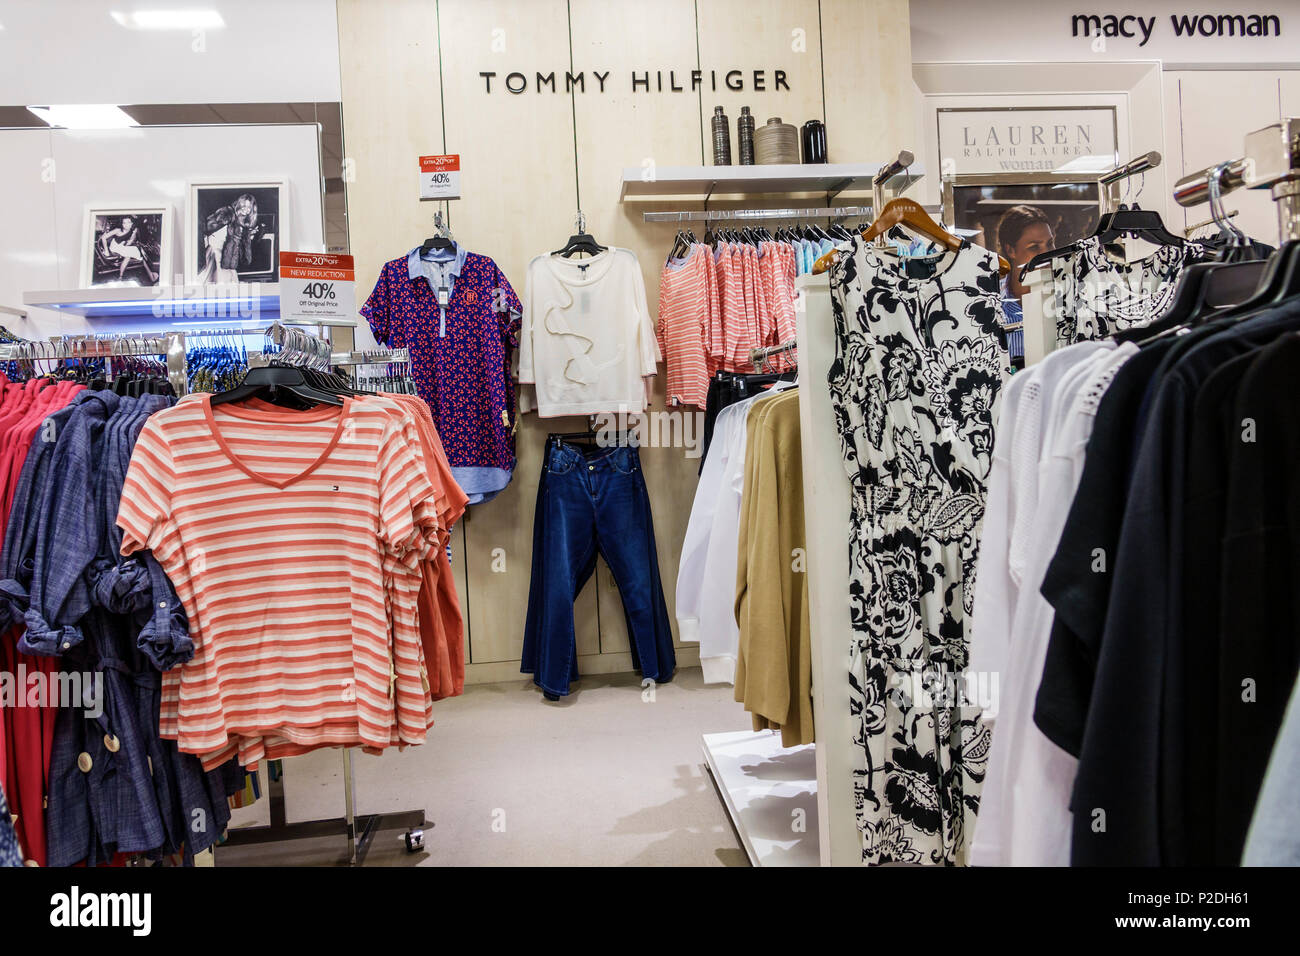 3c0faa0f1826 Florida Jensen Beach Macy s Department Store inside shopping women s plus  size clothing casual wear Tommy Hilfiger designer tops jeans sale display